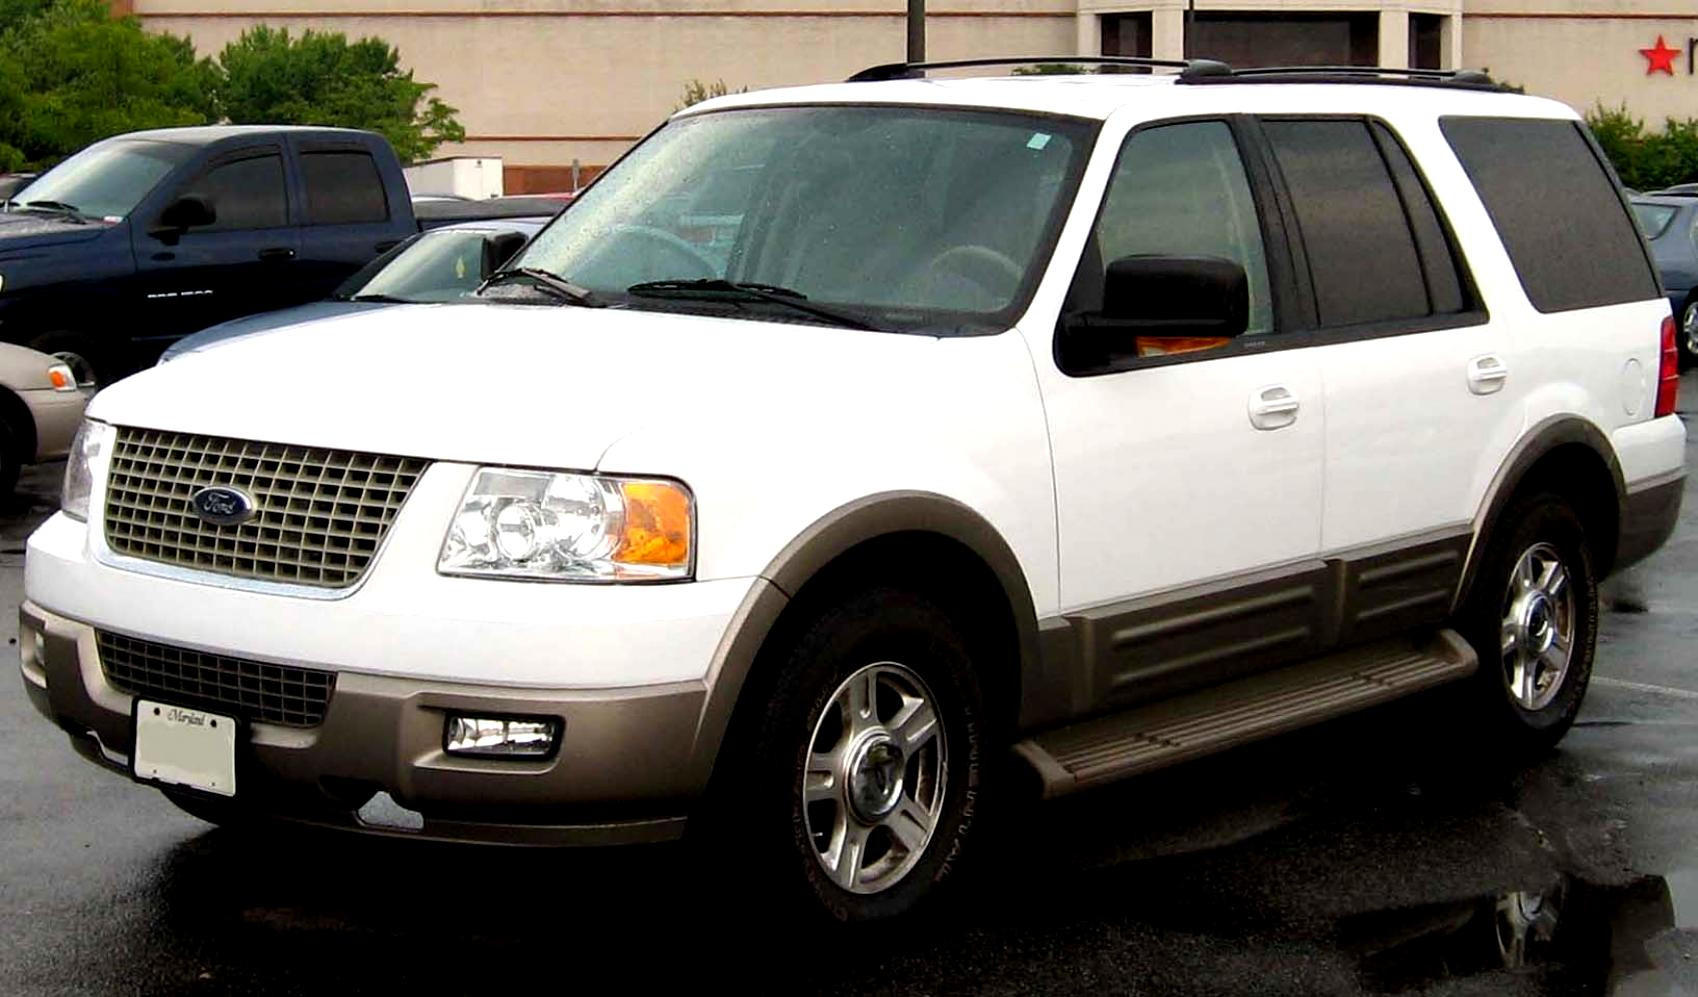 Ford Expedition 2002 #1